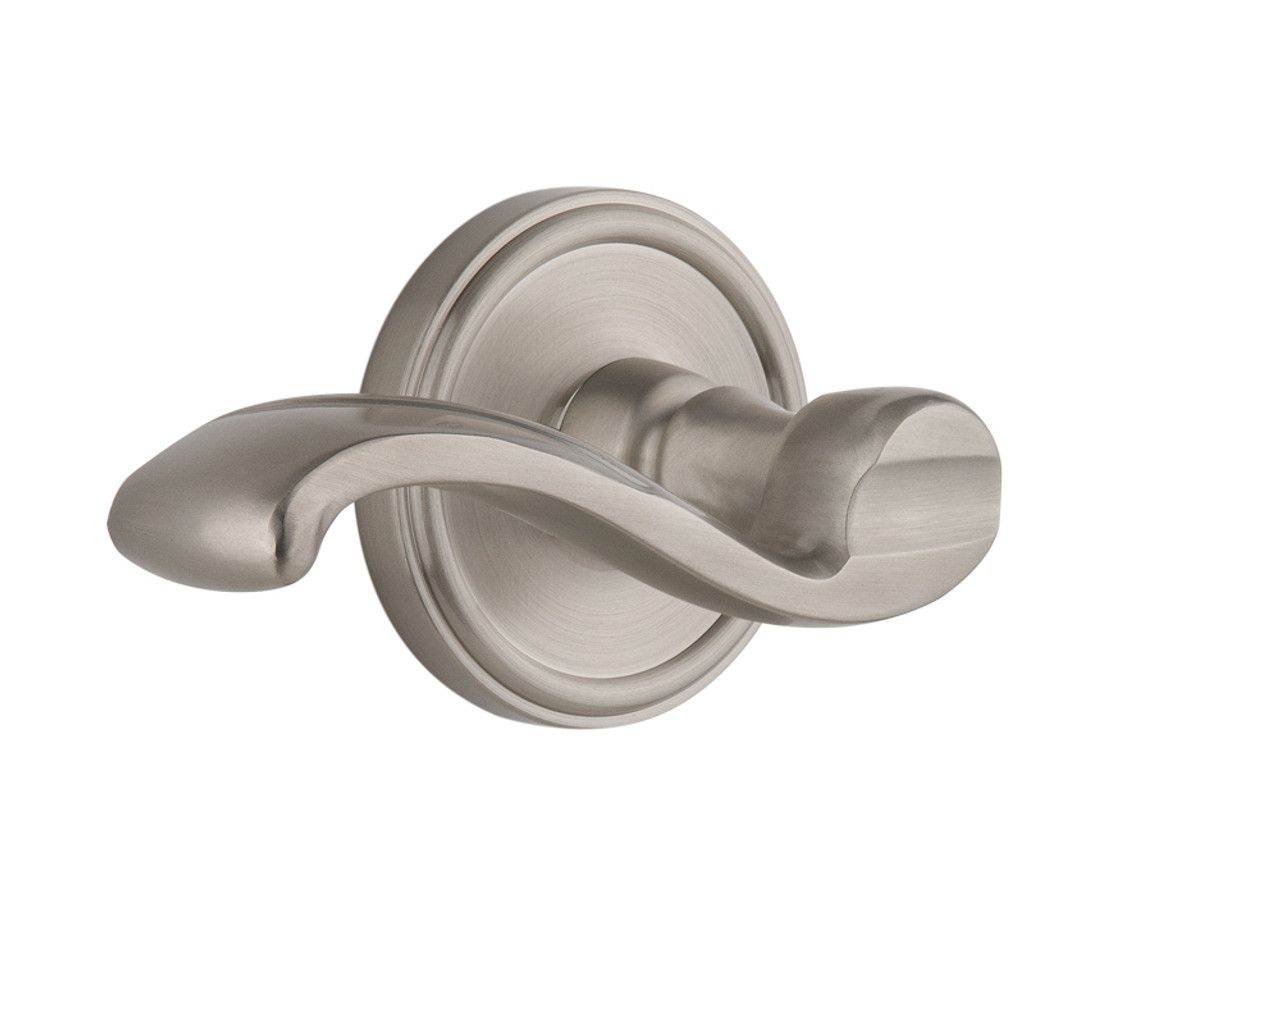 Grandeur Georgetown Plate Dummy with Portofino Lever in Satin Nickel (GD-822146)